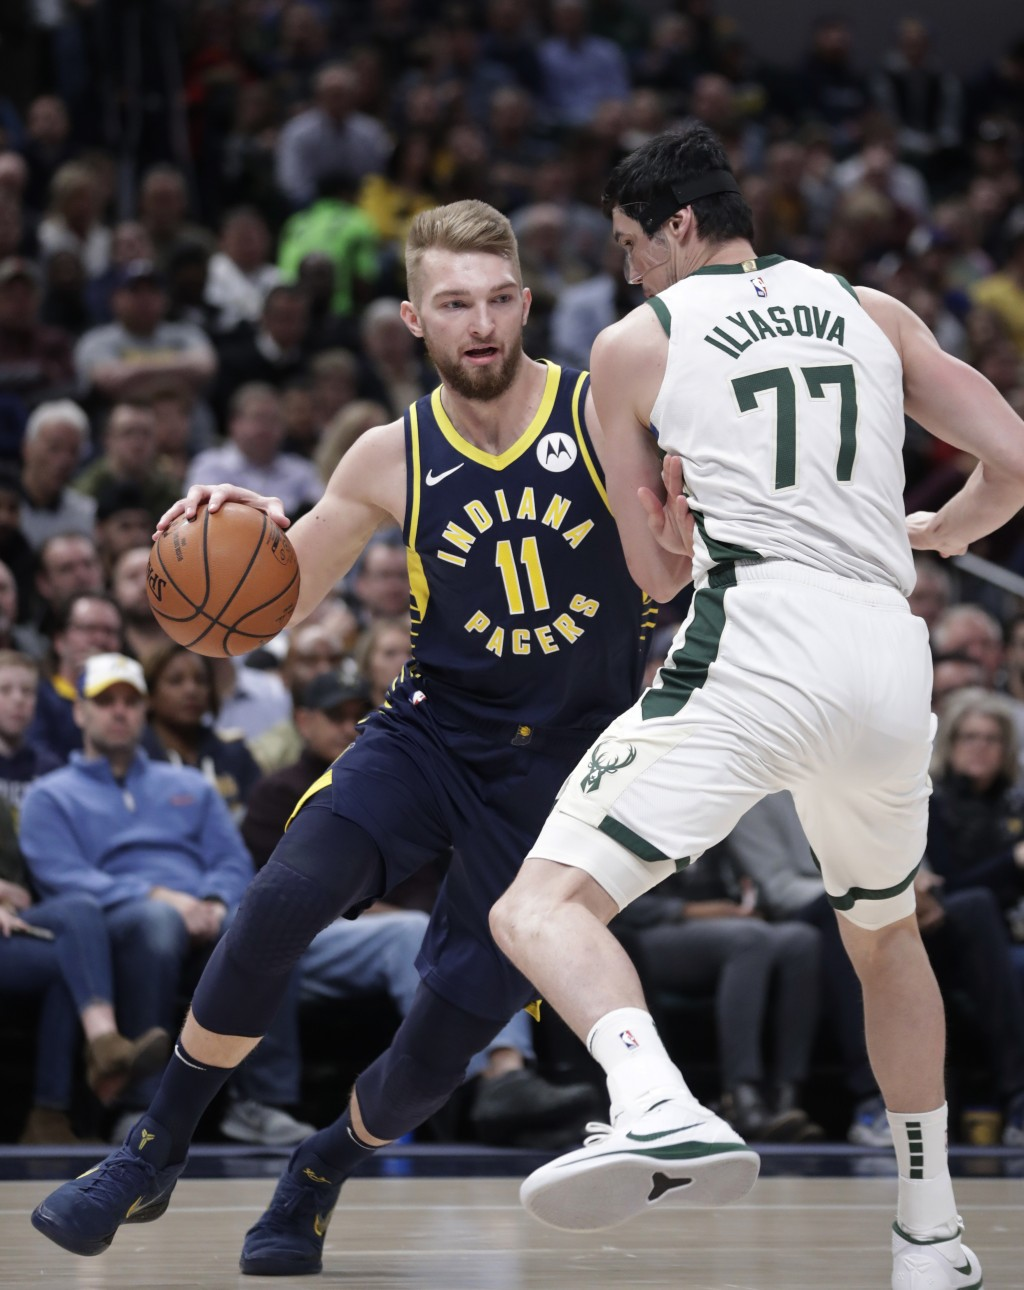 Indiana Pacers forward Domantas Sabonis (11) drives on Milwaukee Bucks forward Ersan Ilyasova (77) during the first half of an NBA basketball game in